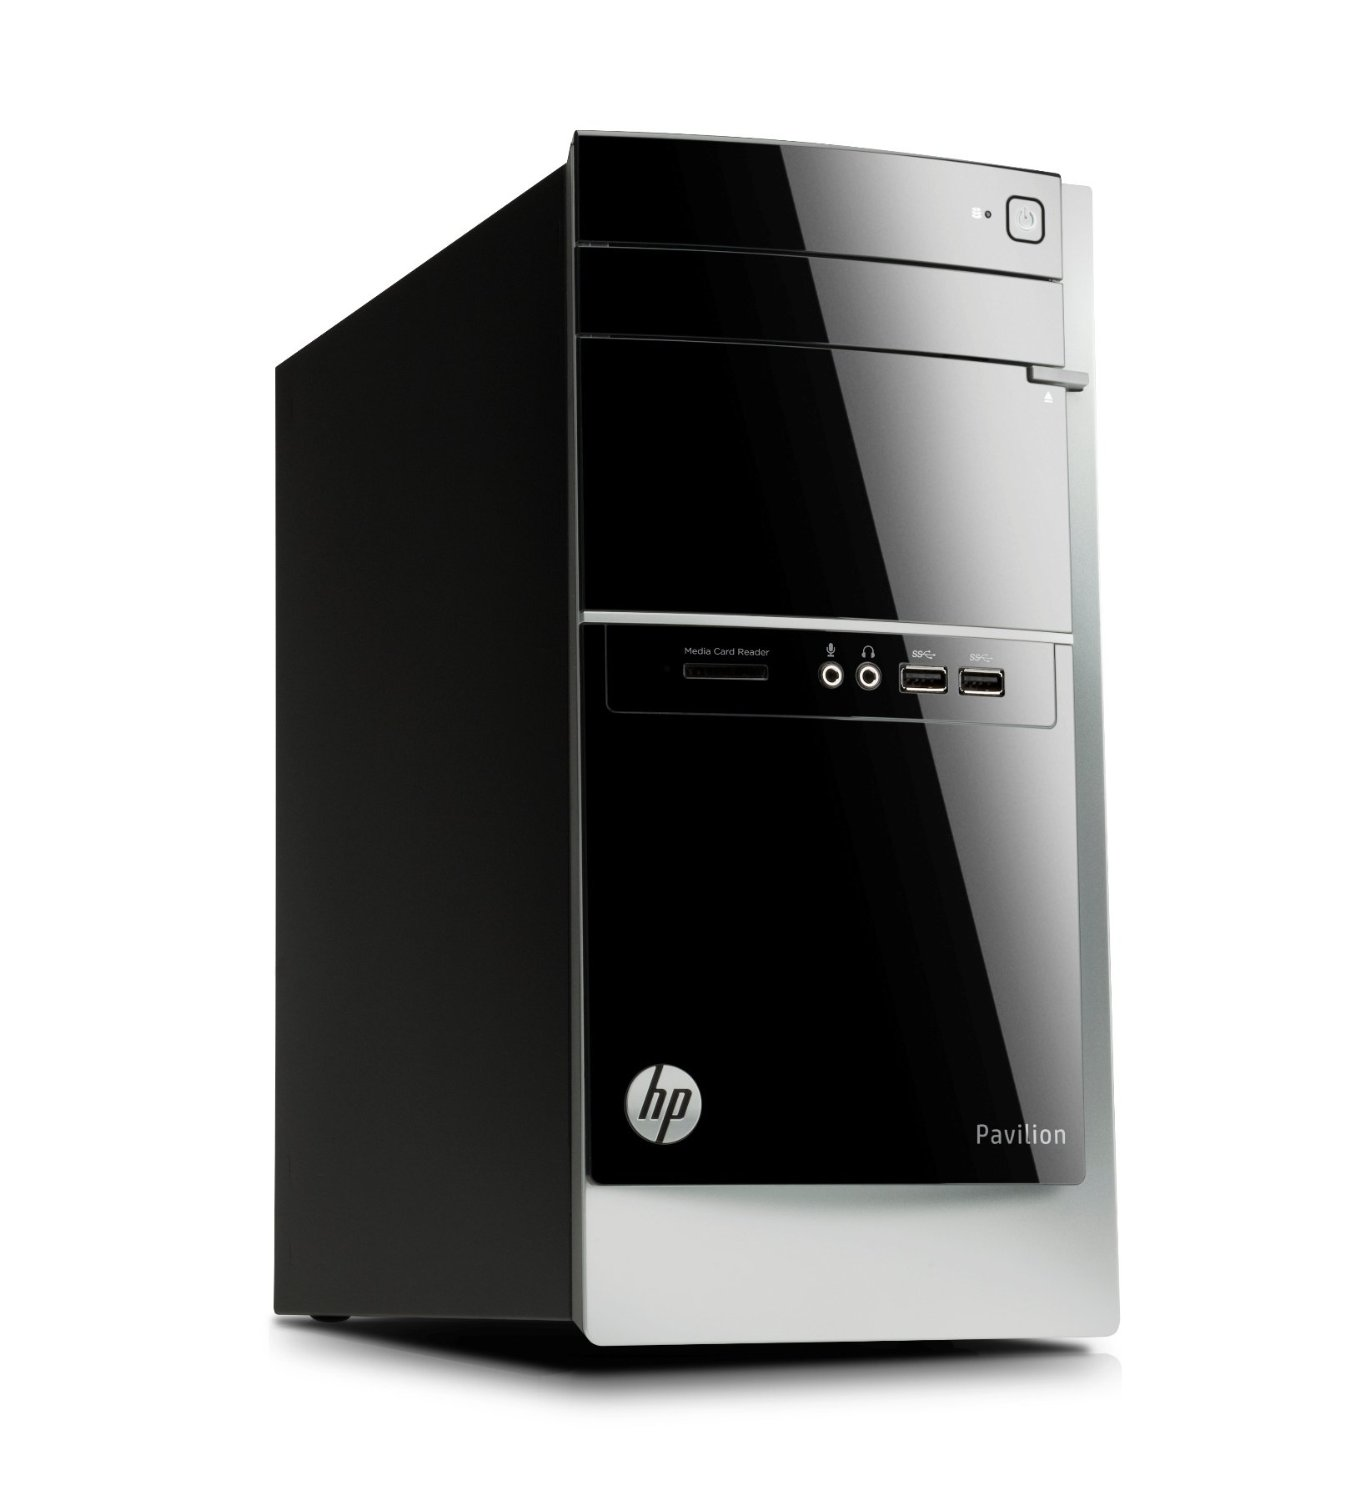 hp pavilion 500 281 desktop computer review. Black Bedroom Furniture Sets. Home Design Ideas